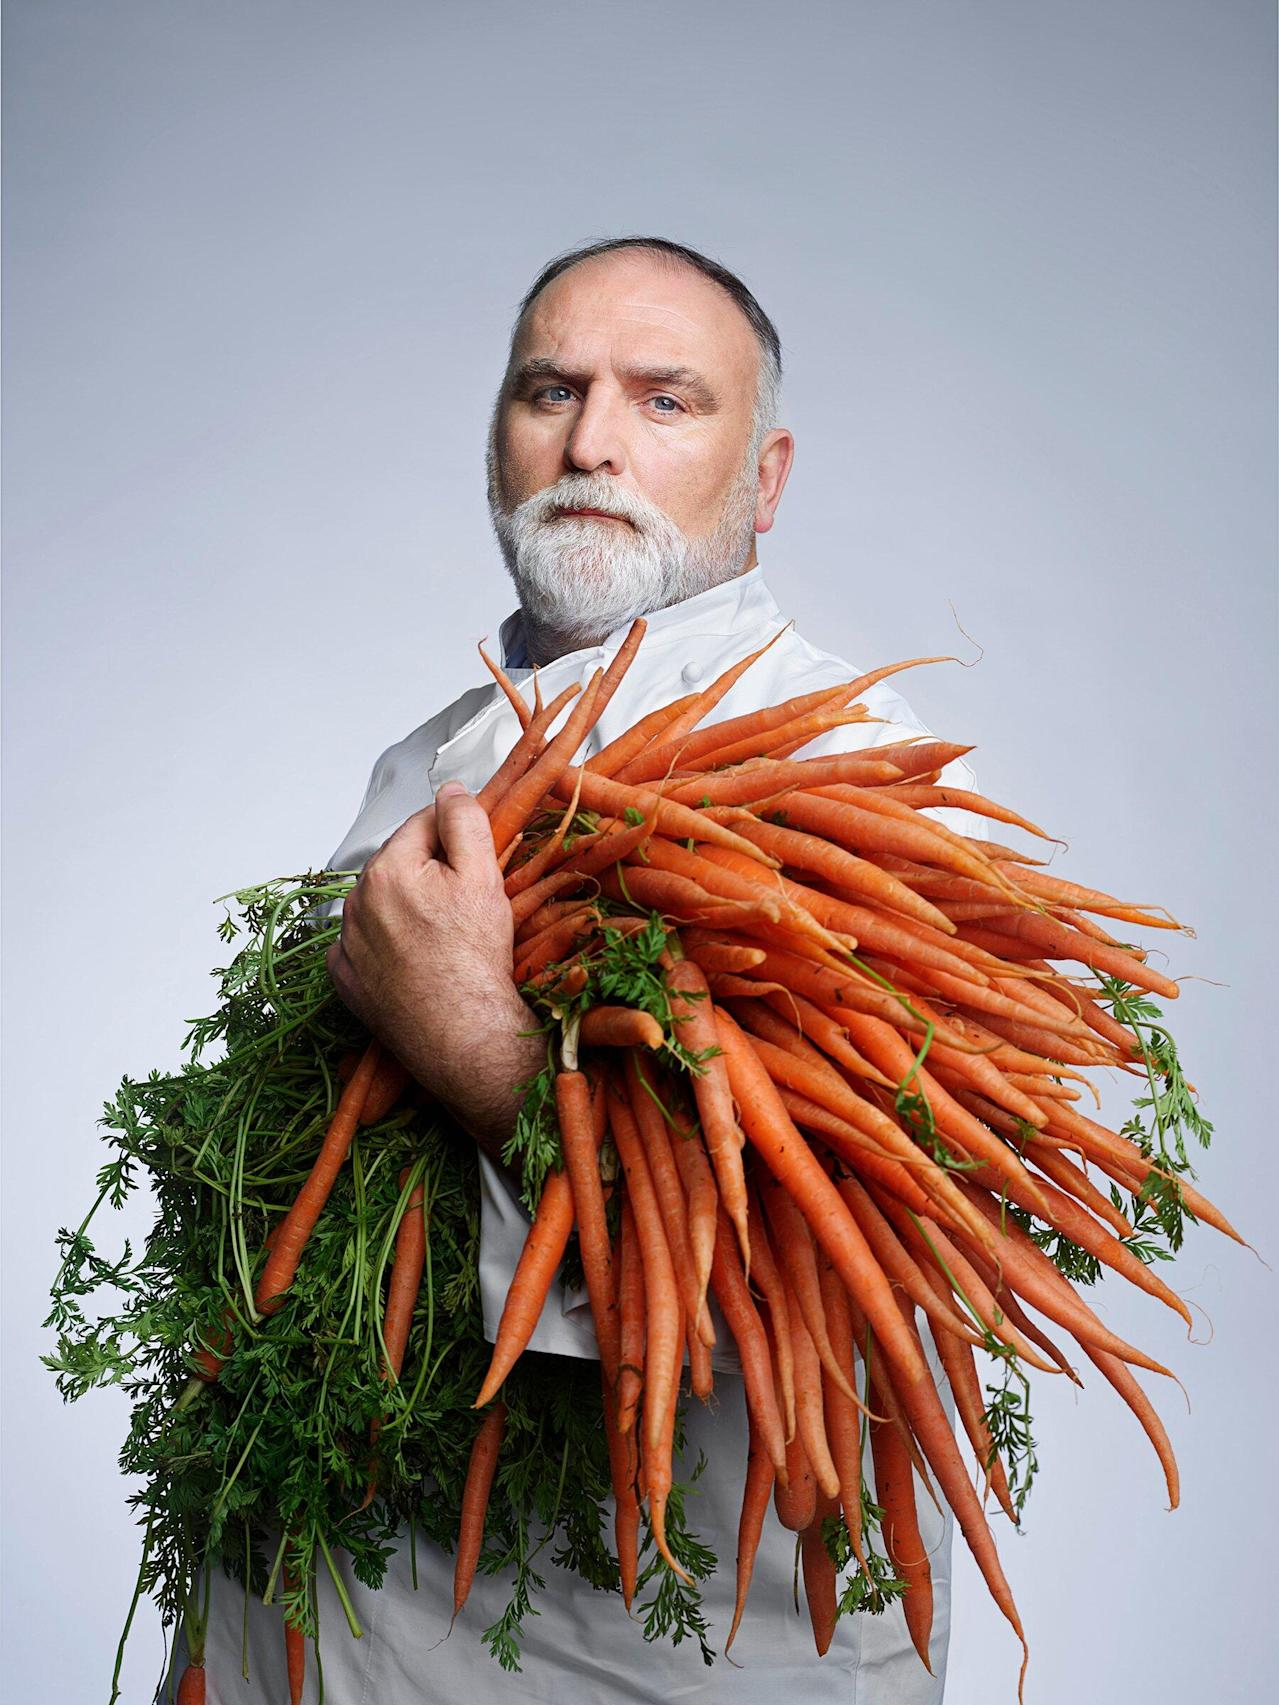 'Without Empathy, Nothing Works.' Chef José Andrés Wants to Feed the World Through the Pandemic - Yahoo News